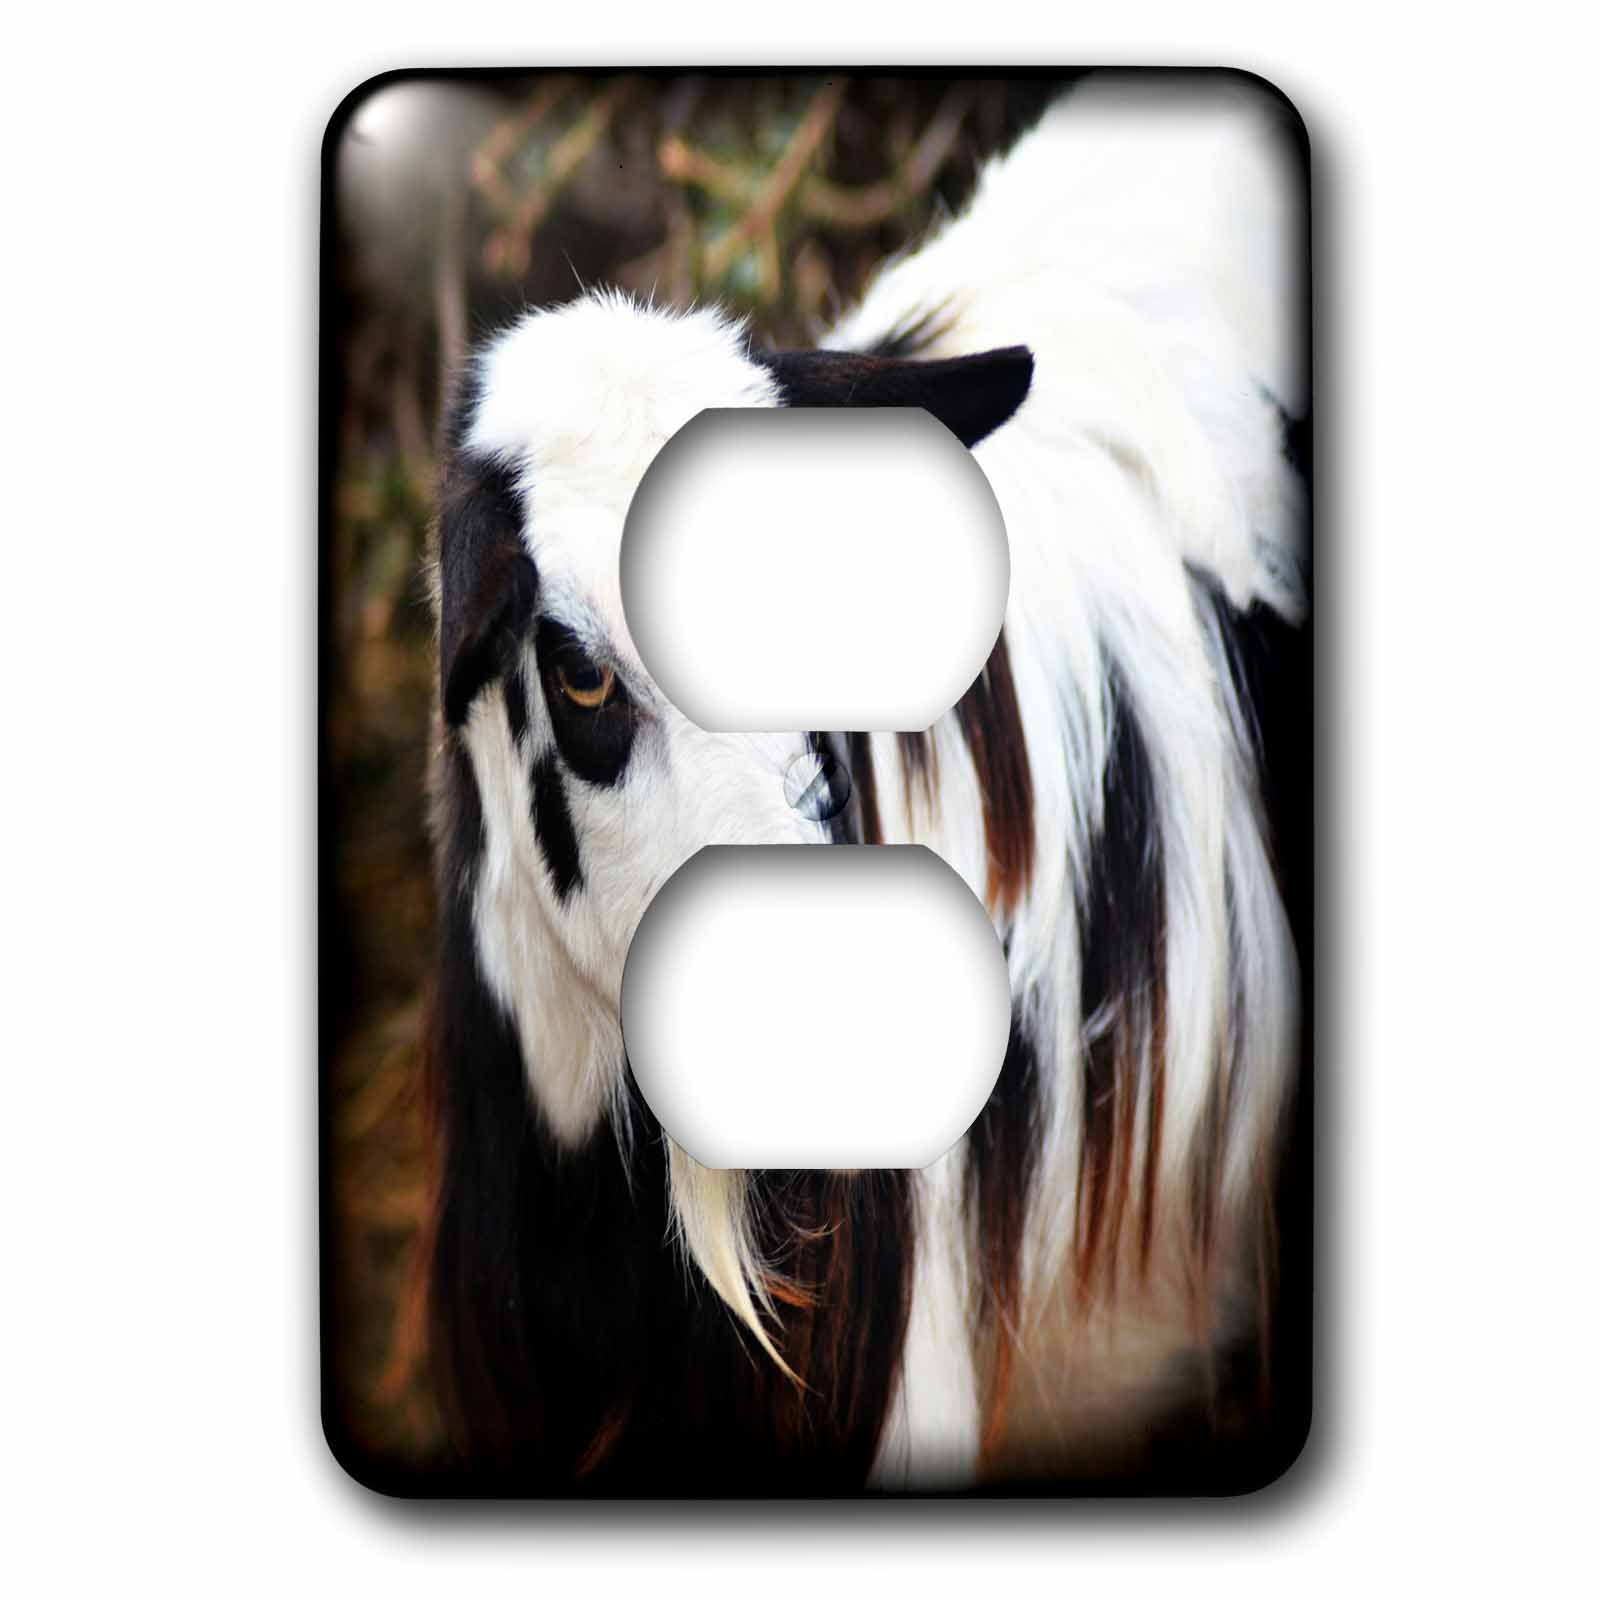 3dRose WhiteOaks Photography and Artwork - Goats - Long Hair Goat is a photo of a beautiful long haired goat - Light Switch Covers - 2 plug outlet cover (lsp_265334_6)